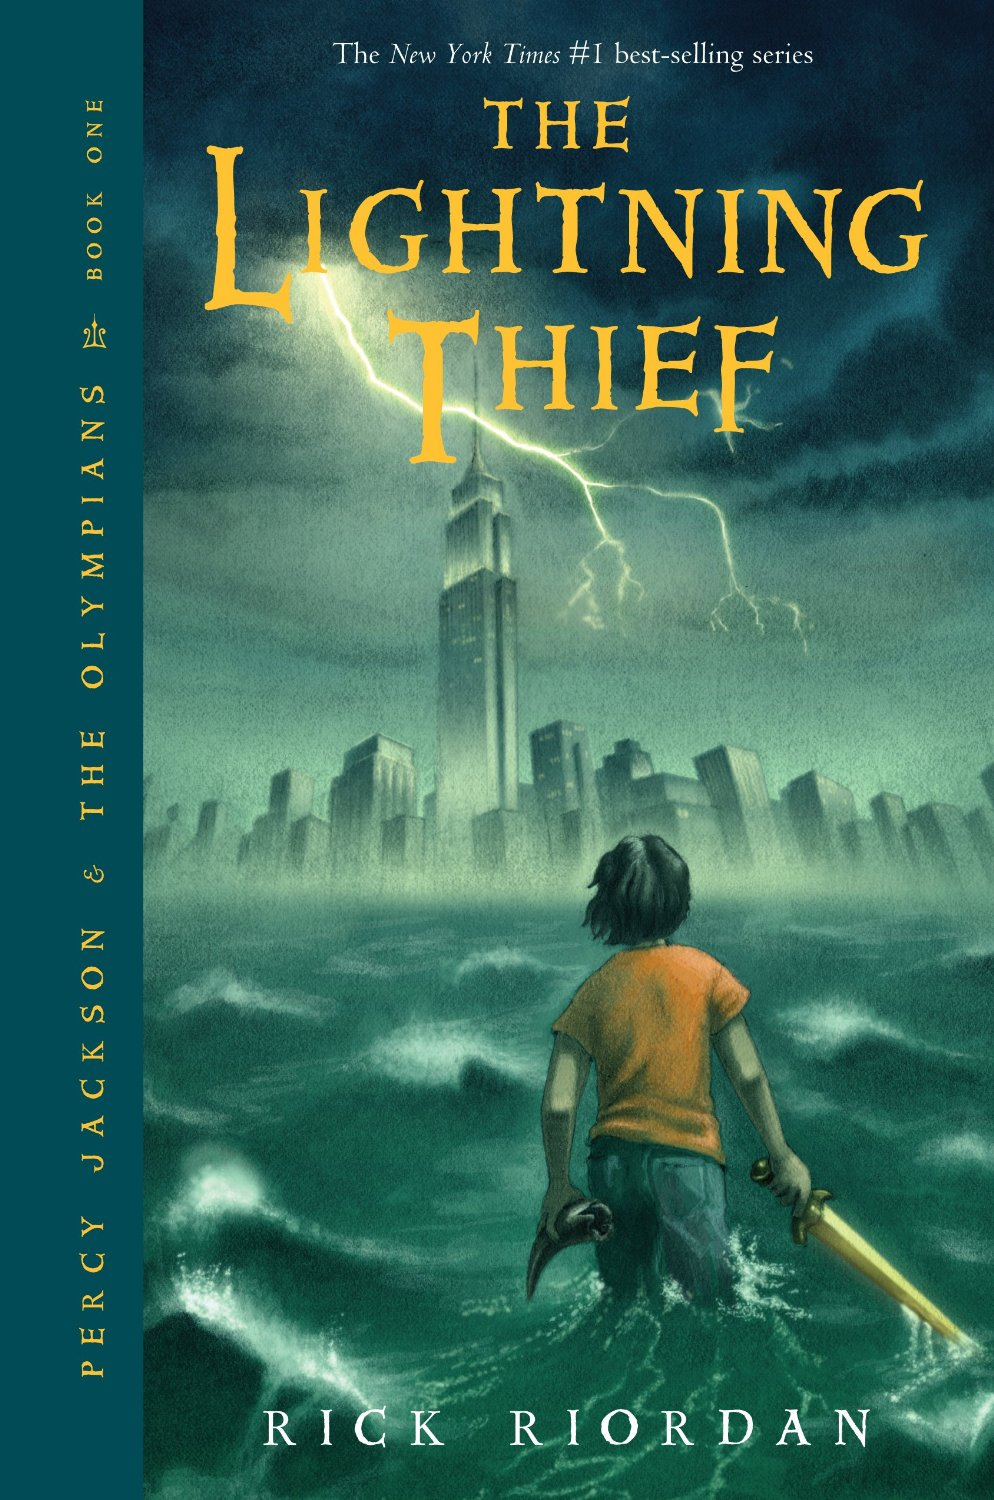 Image result for pjo cover